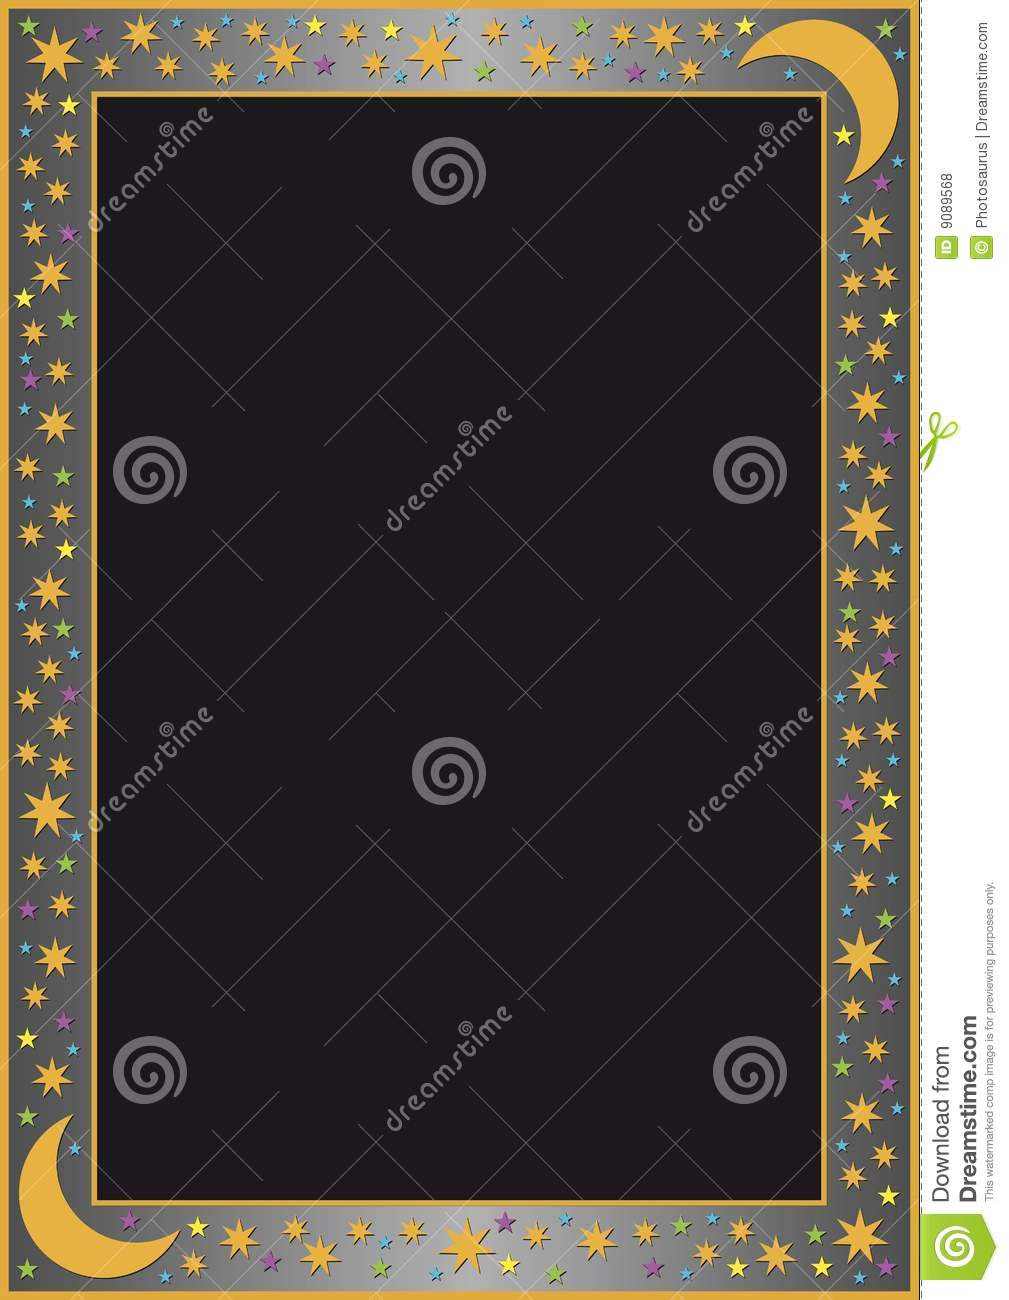 Grey gradient border with many stars